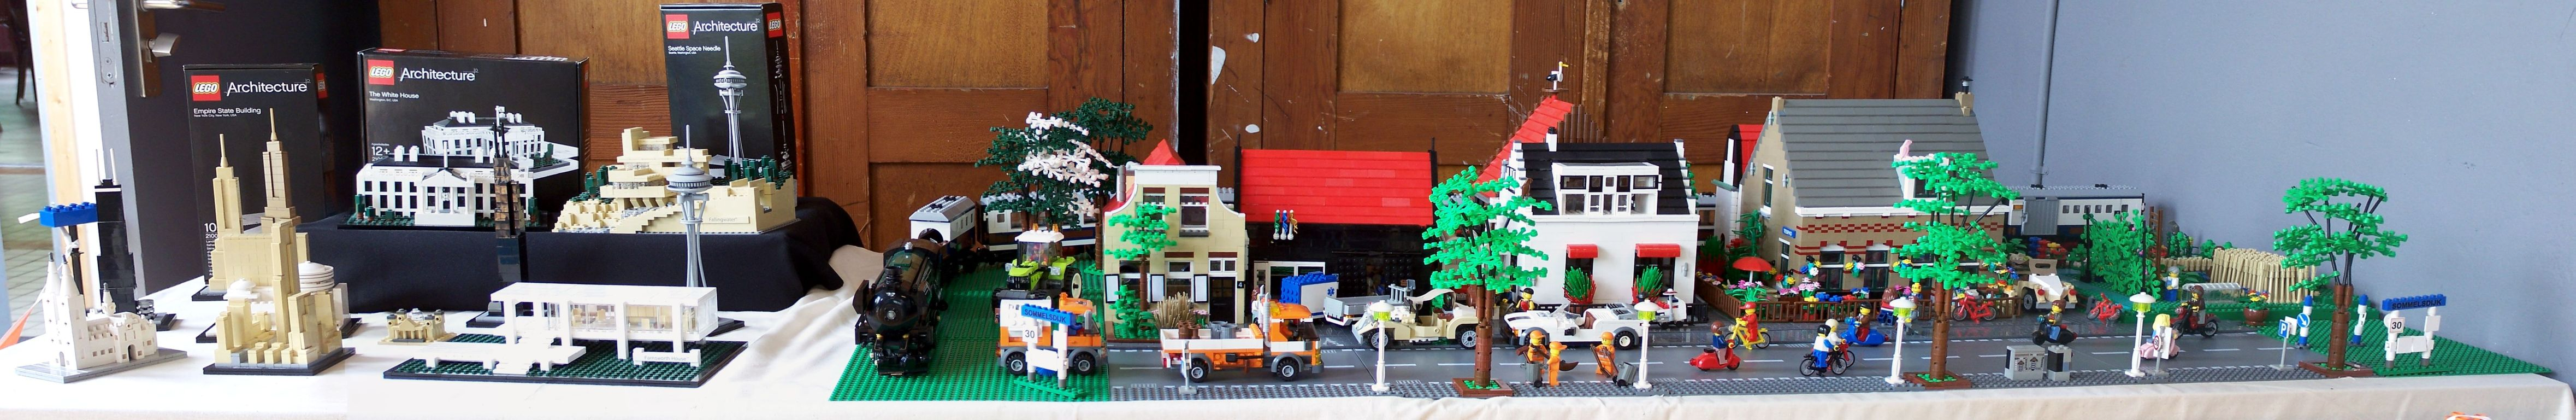 2011-05-07_brick_fair_flakkee_009.jpg